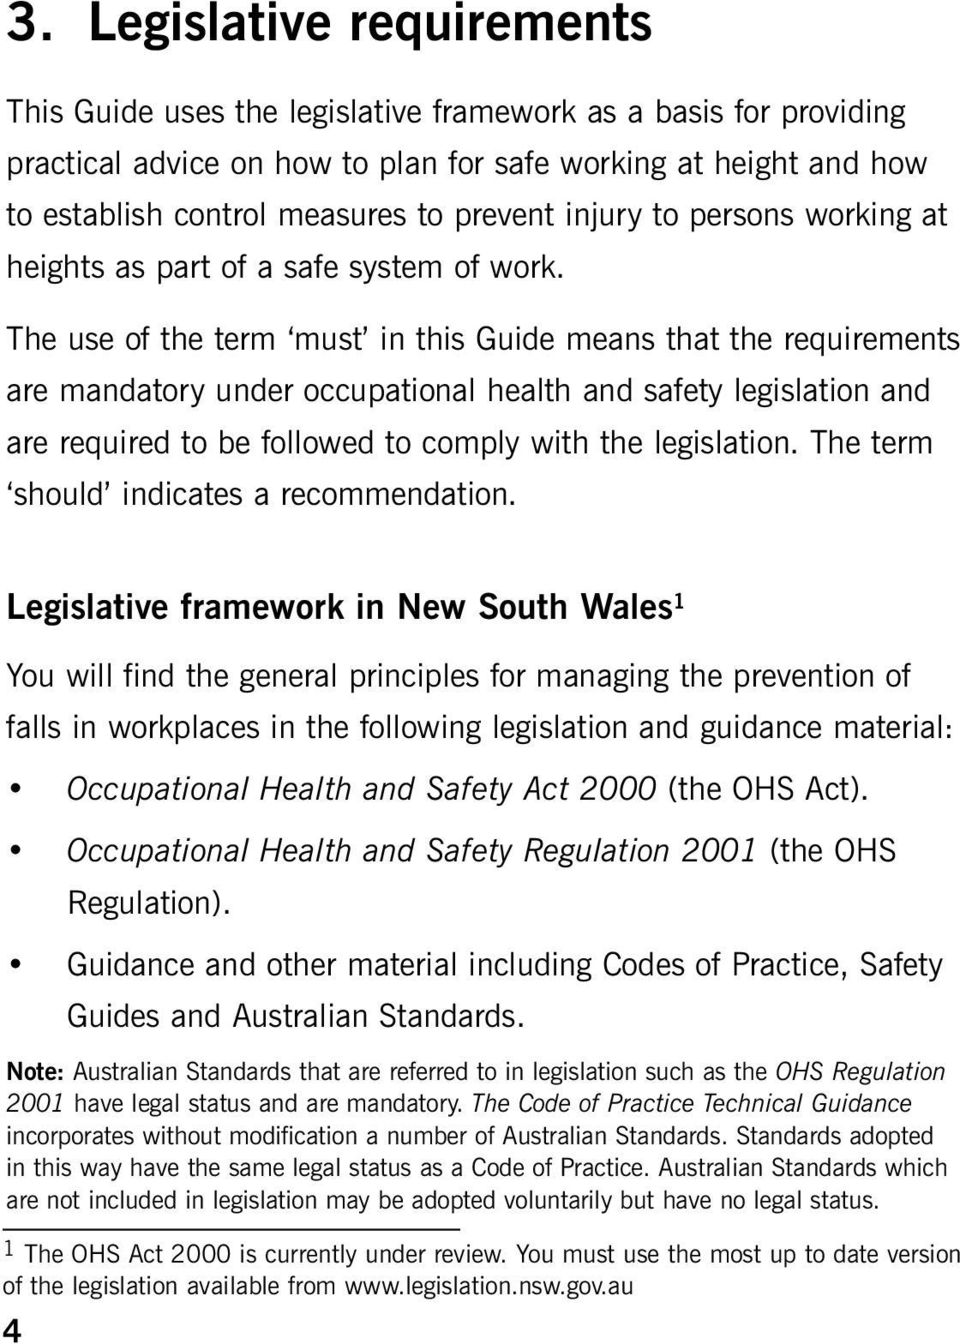 The use of the term must in this Guide means that the requirements are mandatory under occupational health and safety legislation and are required to be followed to comply with the legislation.